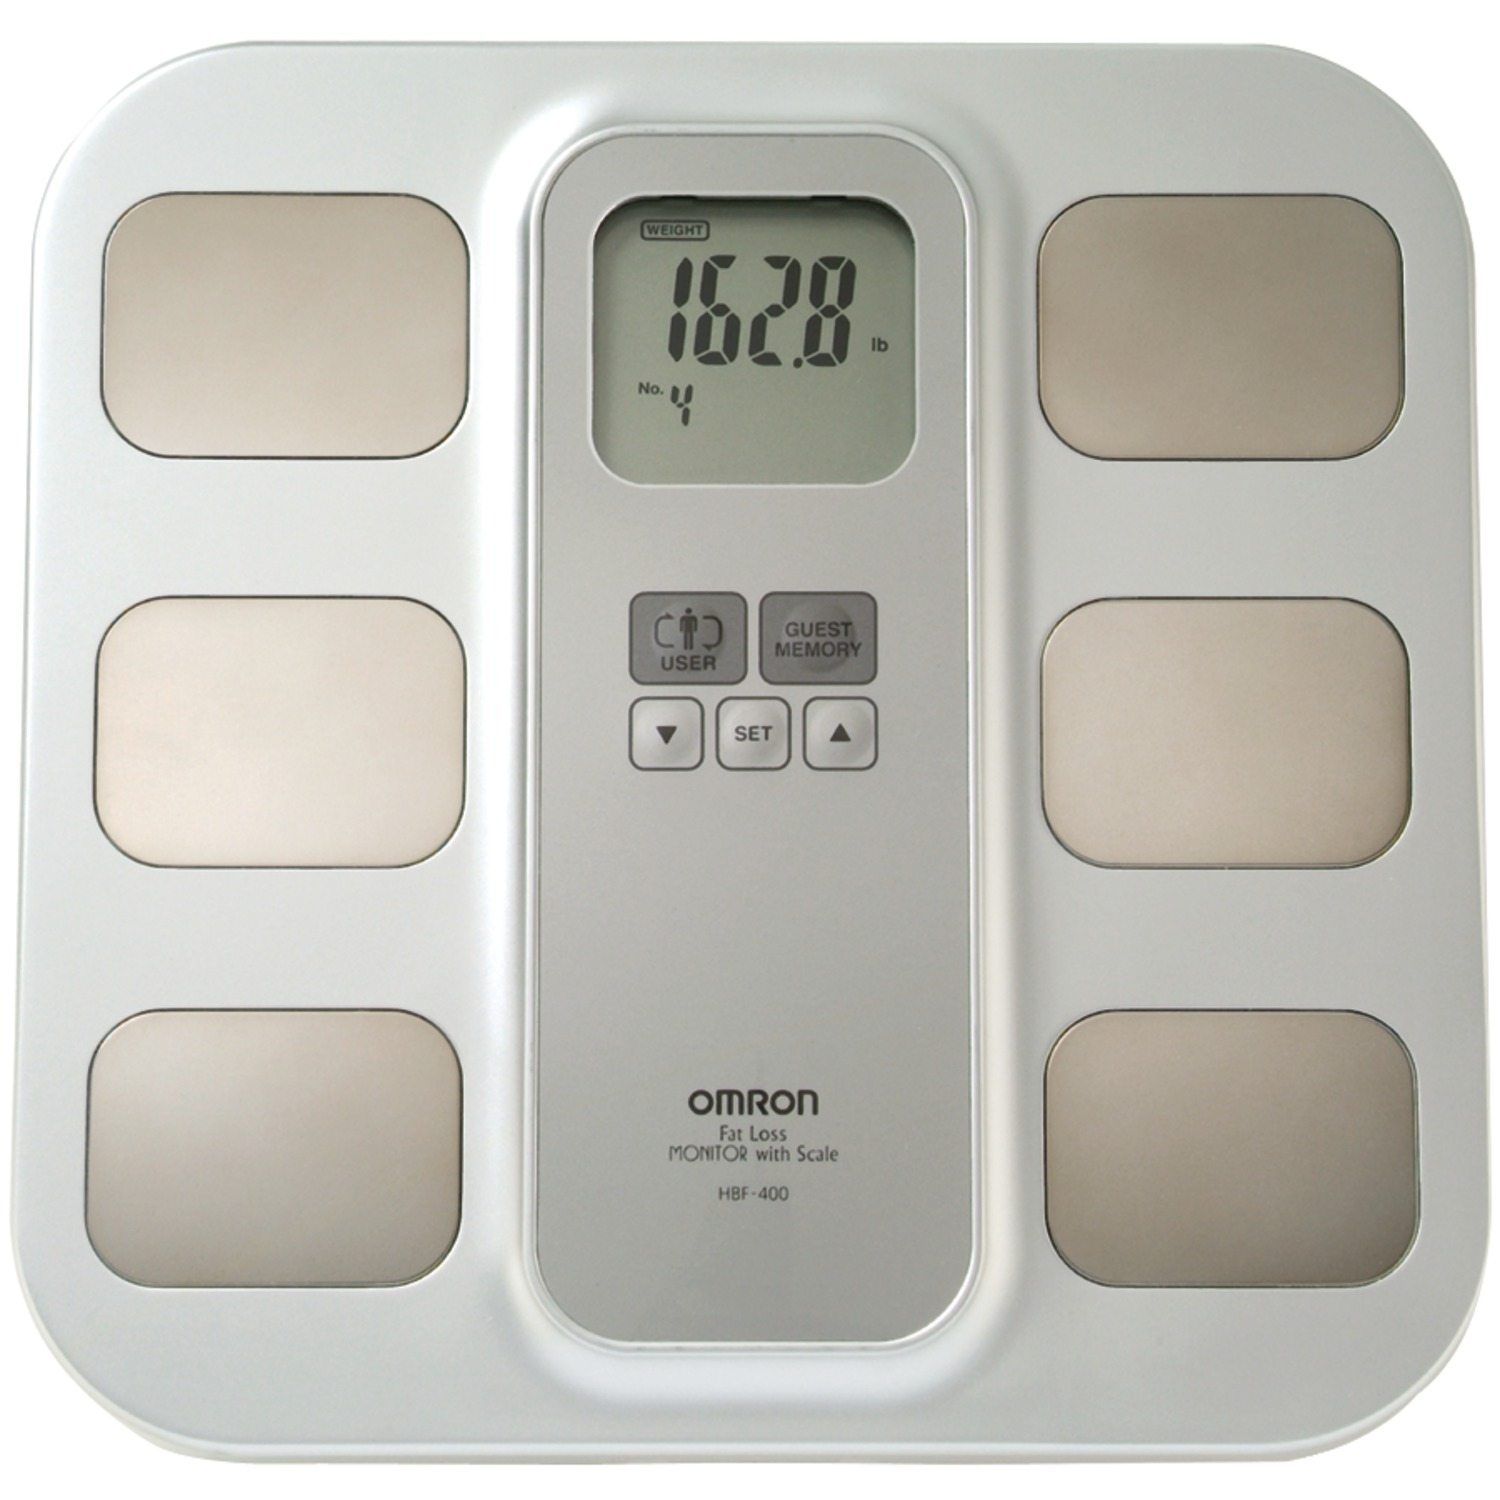 Omron Hbf-400 Full-body Sensor Body Composition Monitor & Scale With 3 Fitness Indicators